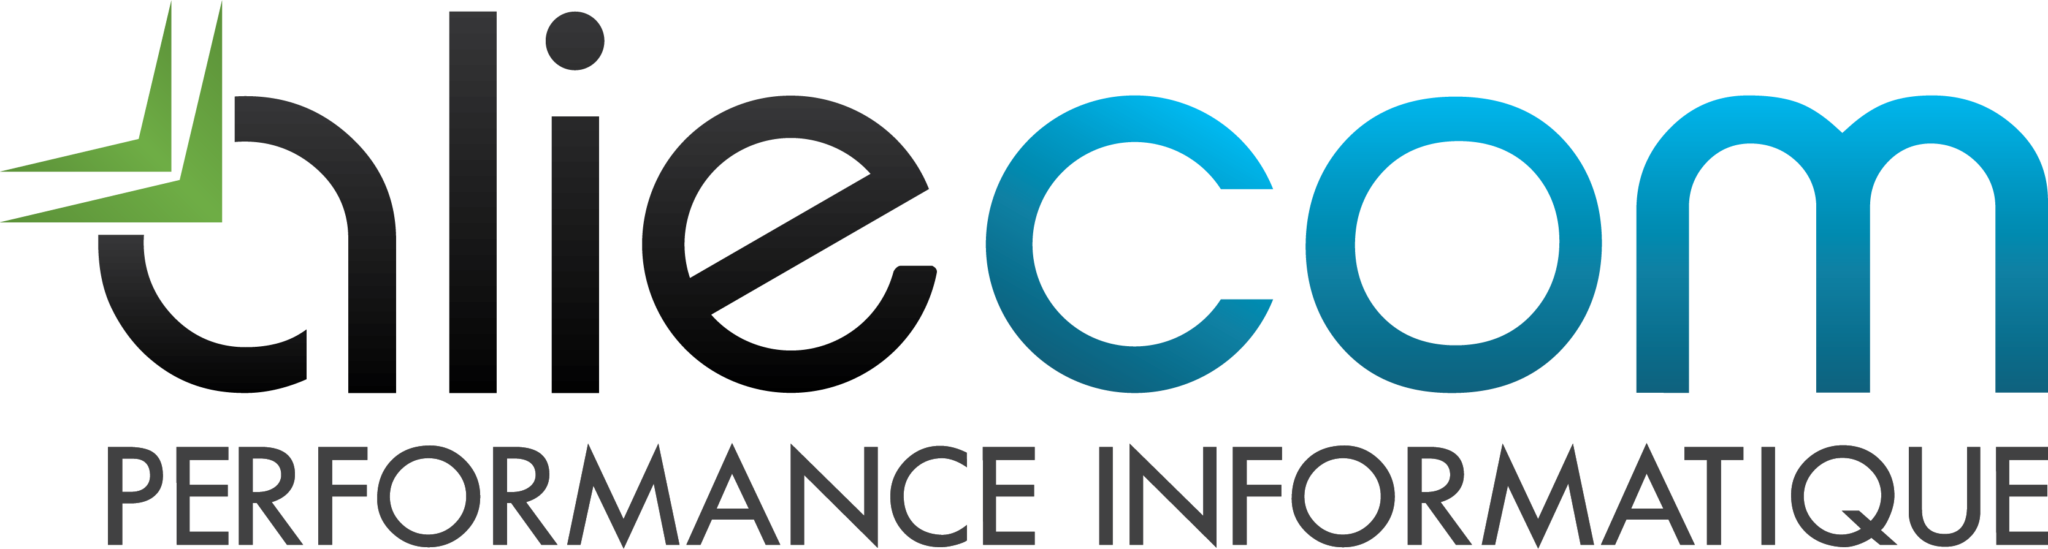 Aliecom, Experts en Performance Informatique